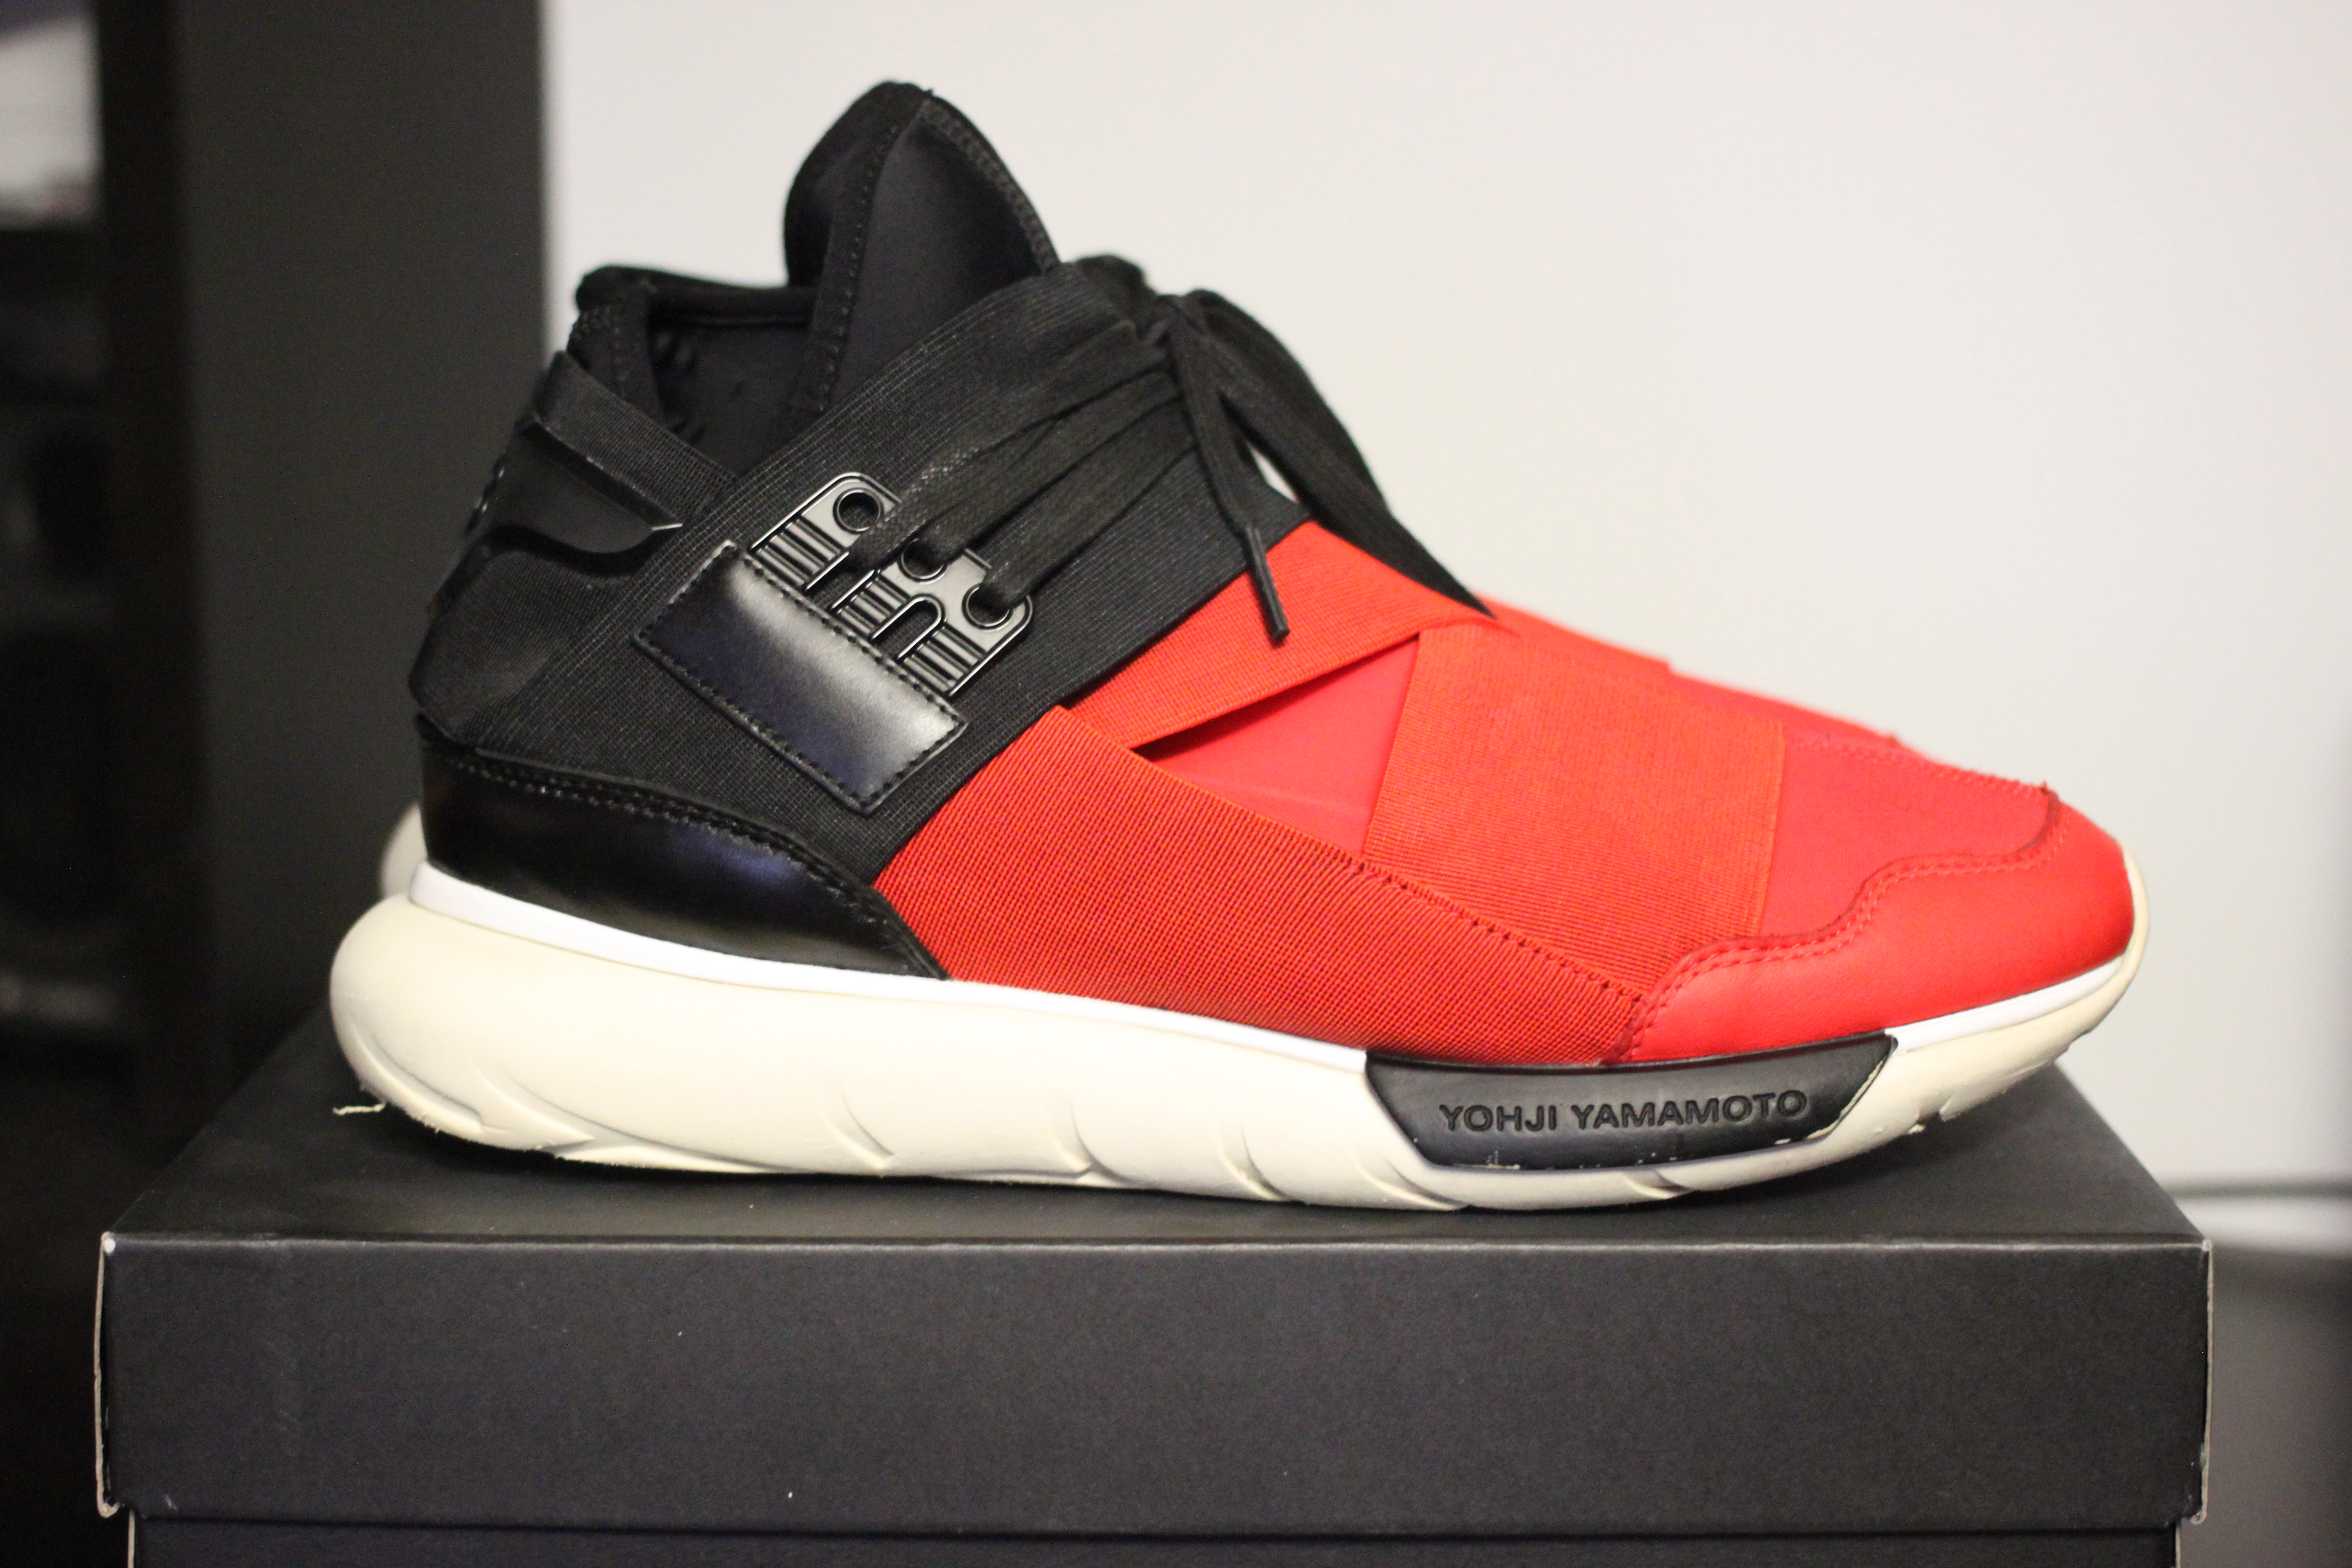 46b3e75b67ed1 Y-3 Y3 Qasa High Red Black Size 8.5 - Hi-Top Sneakers for Sale - Grailed